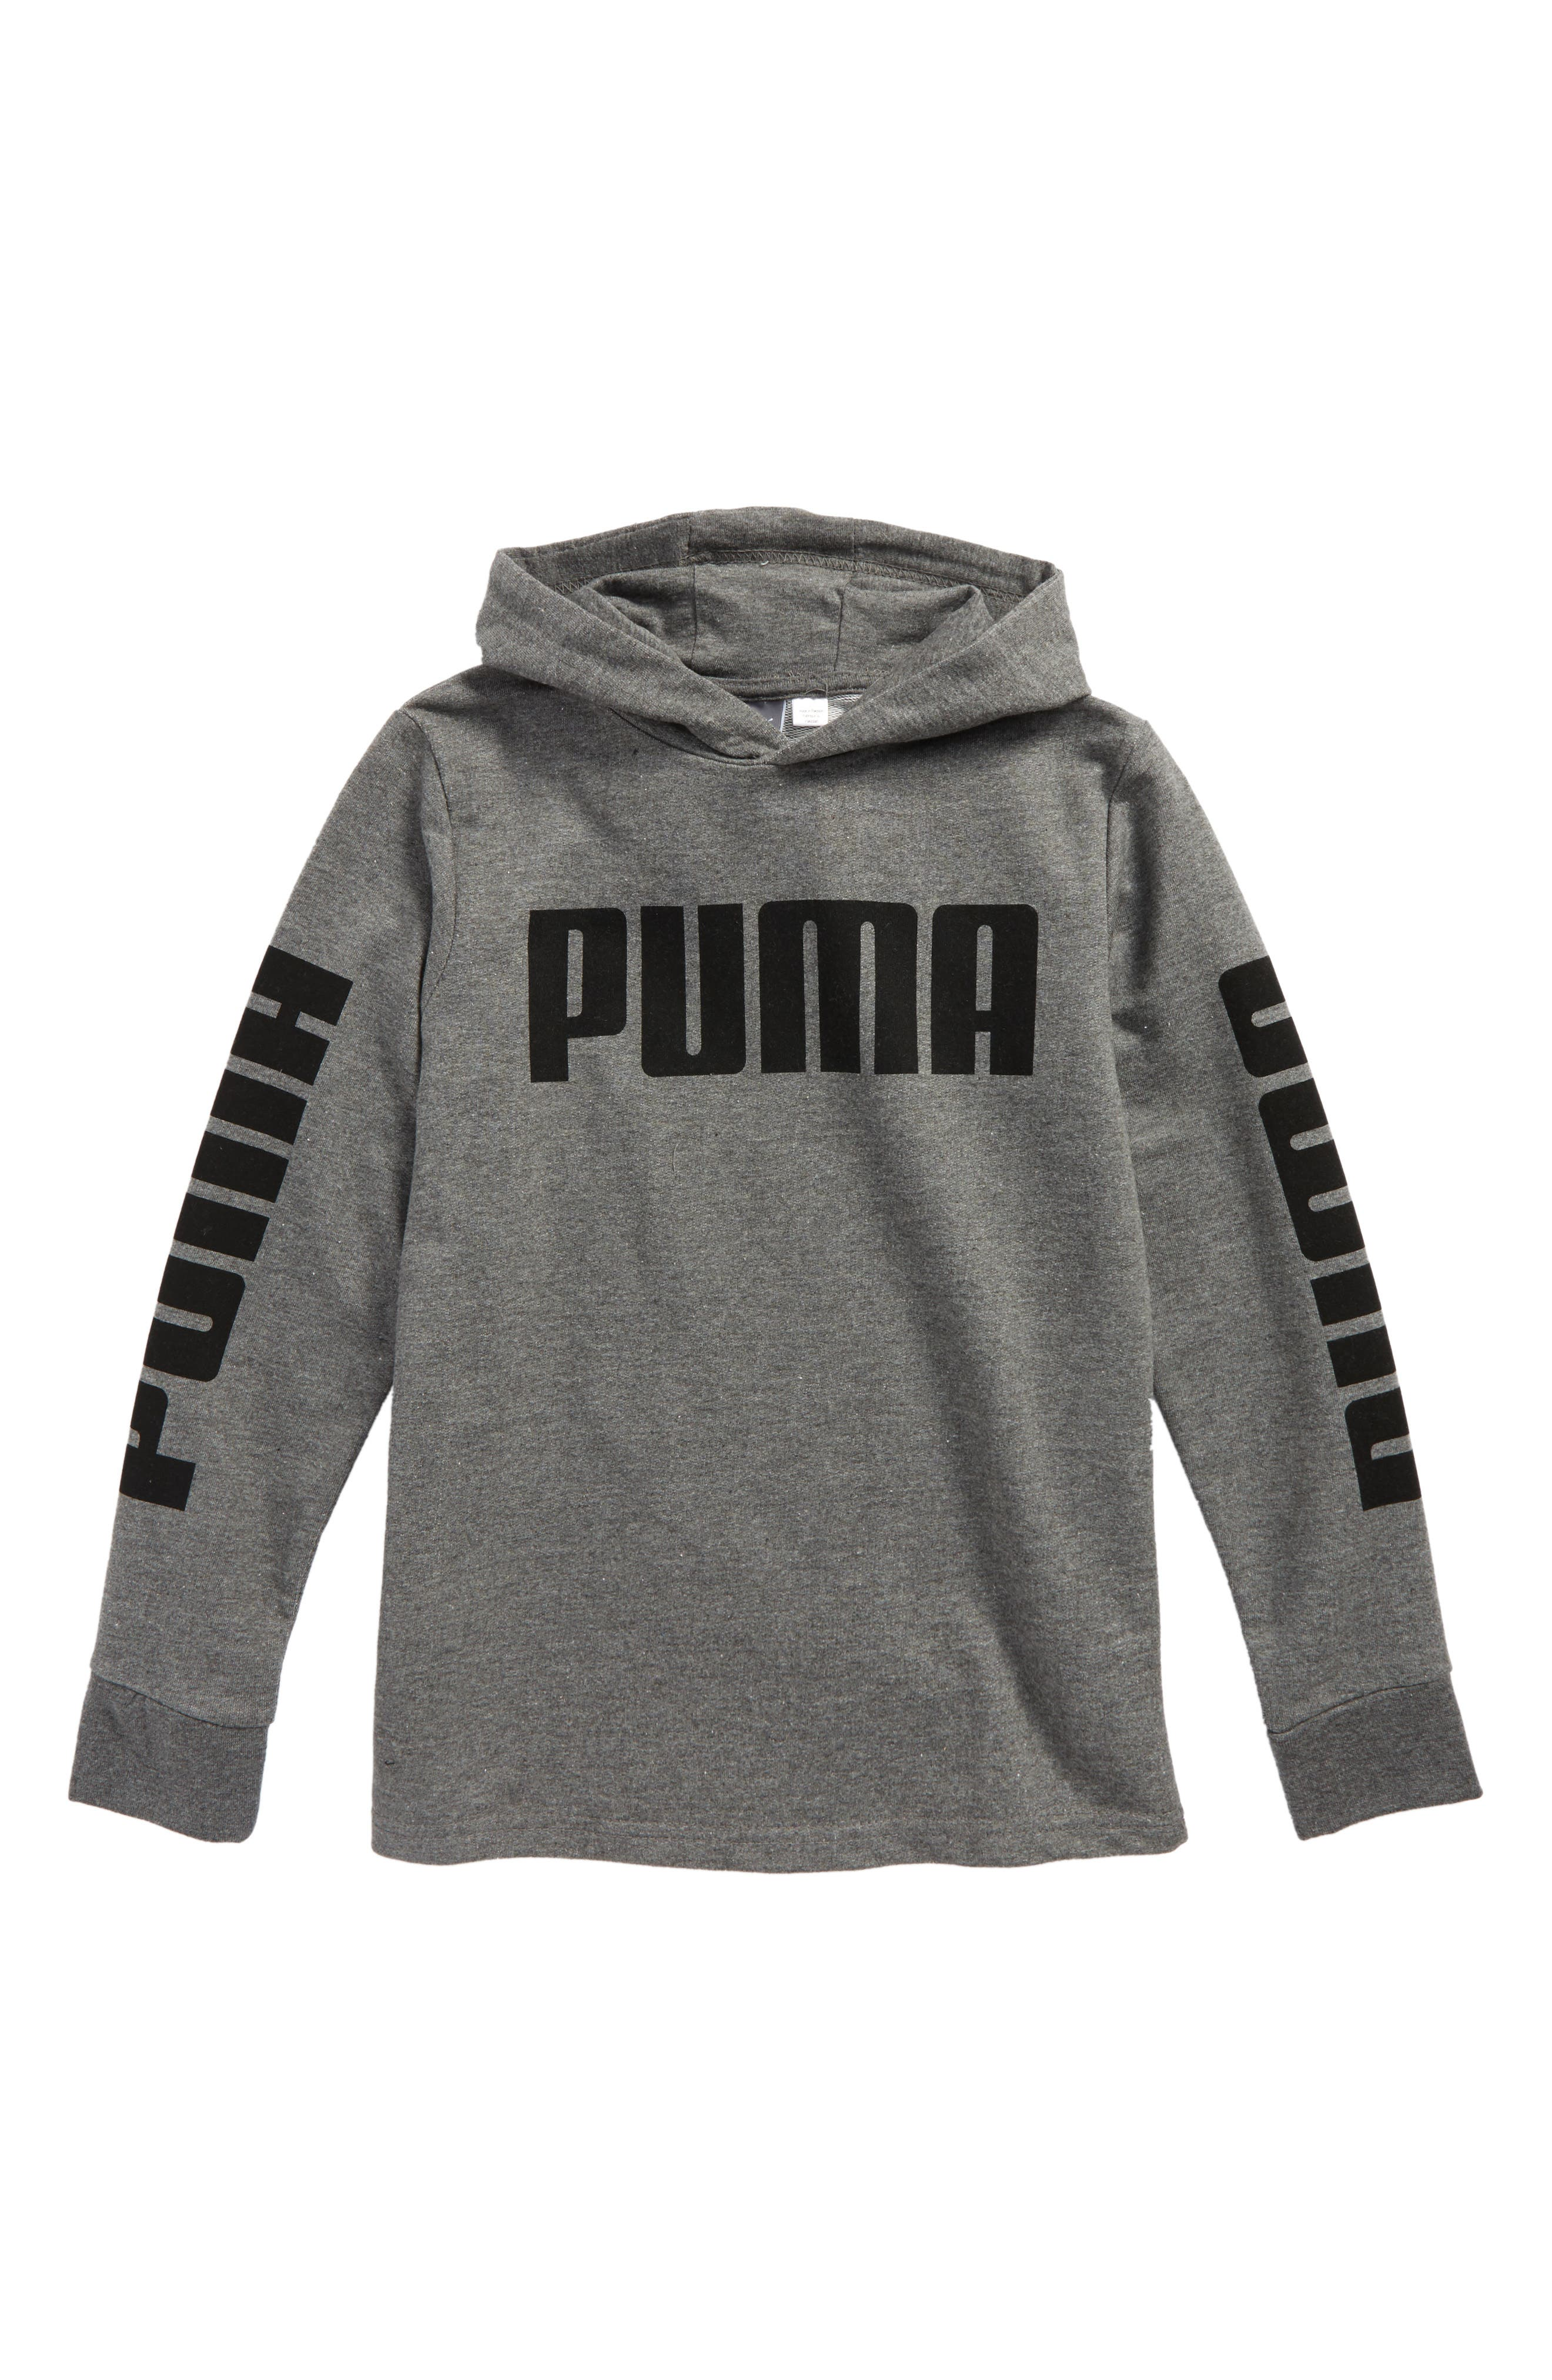 PUMA Rebel Logo Graphic Pullover Hoodie (Big Boys)